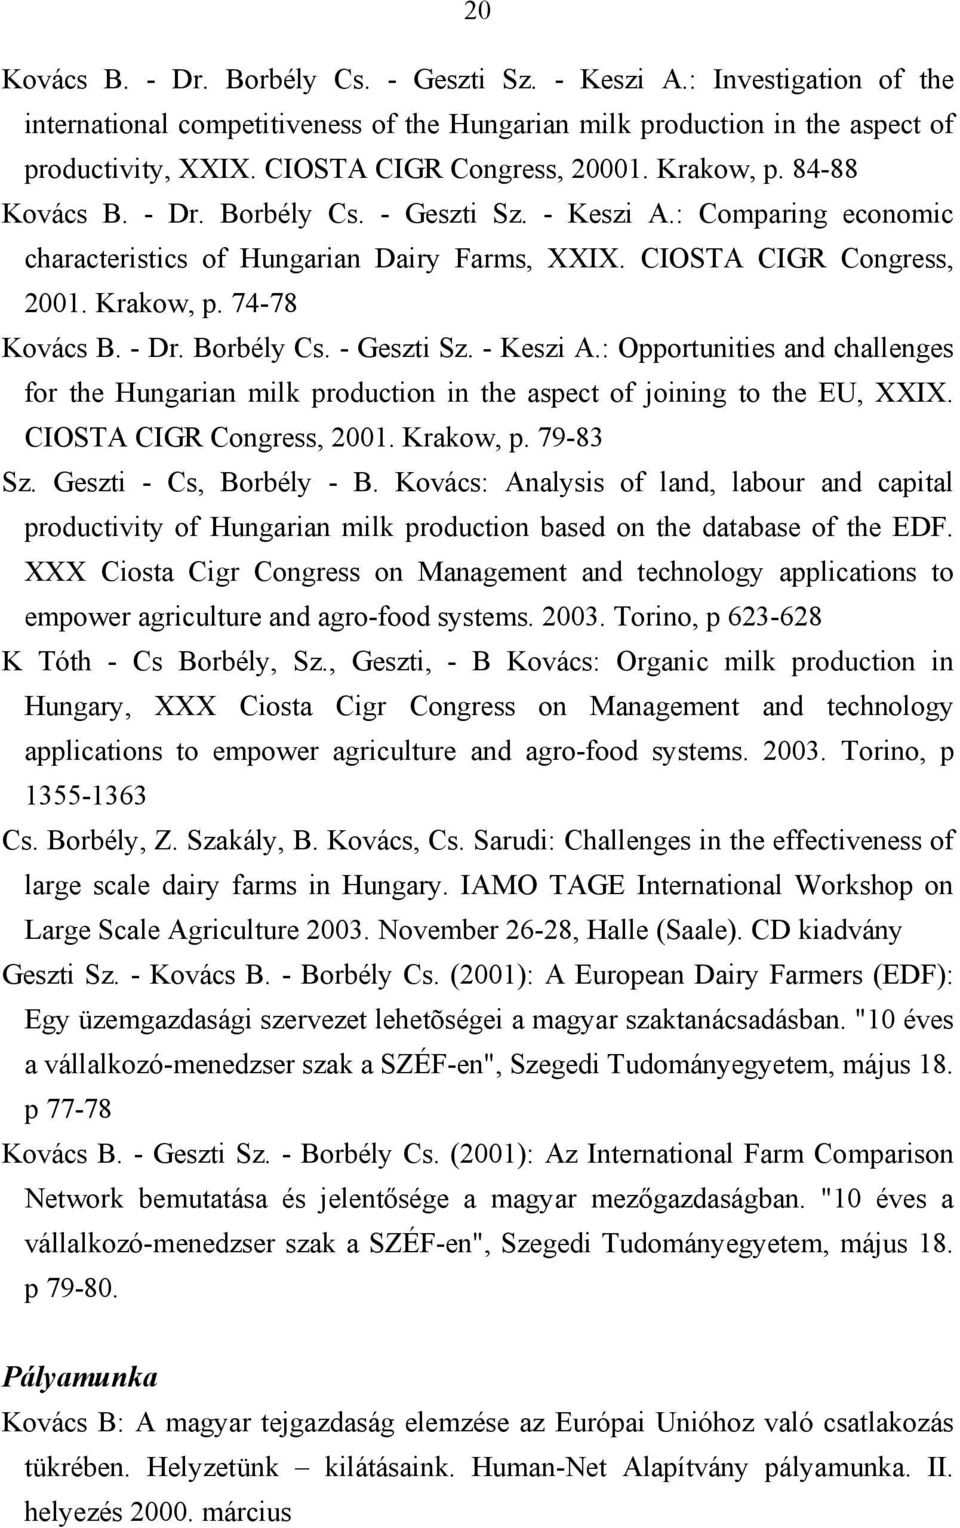 Krakow, p. 74-78 Kovács B. - Dr. Borbély Cs. - Geszti Sz. - Keszi A.: Opportunities and challenges for the Hungarian milk production in the aspect of joining to the EU, XXIX.